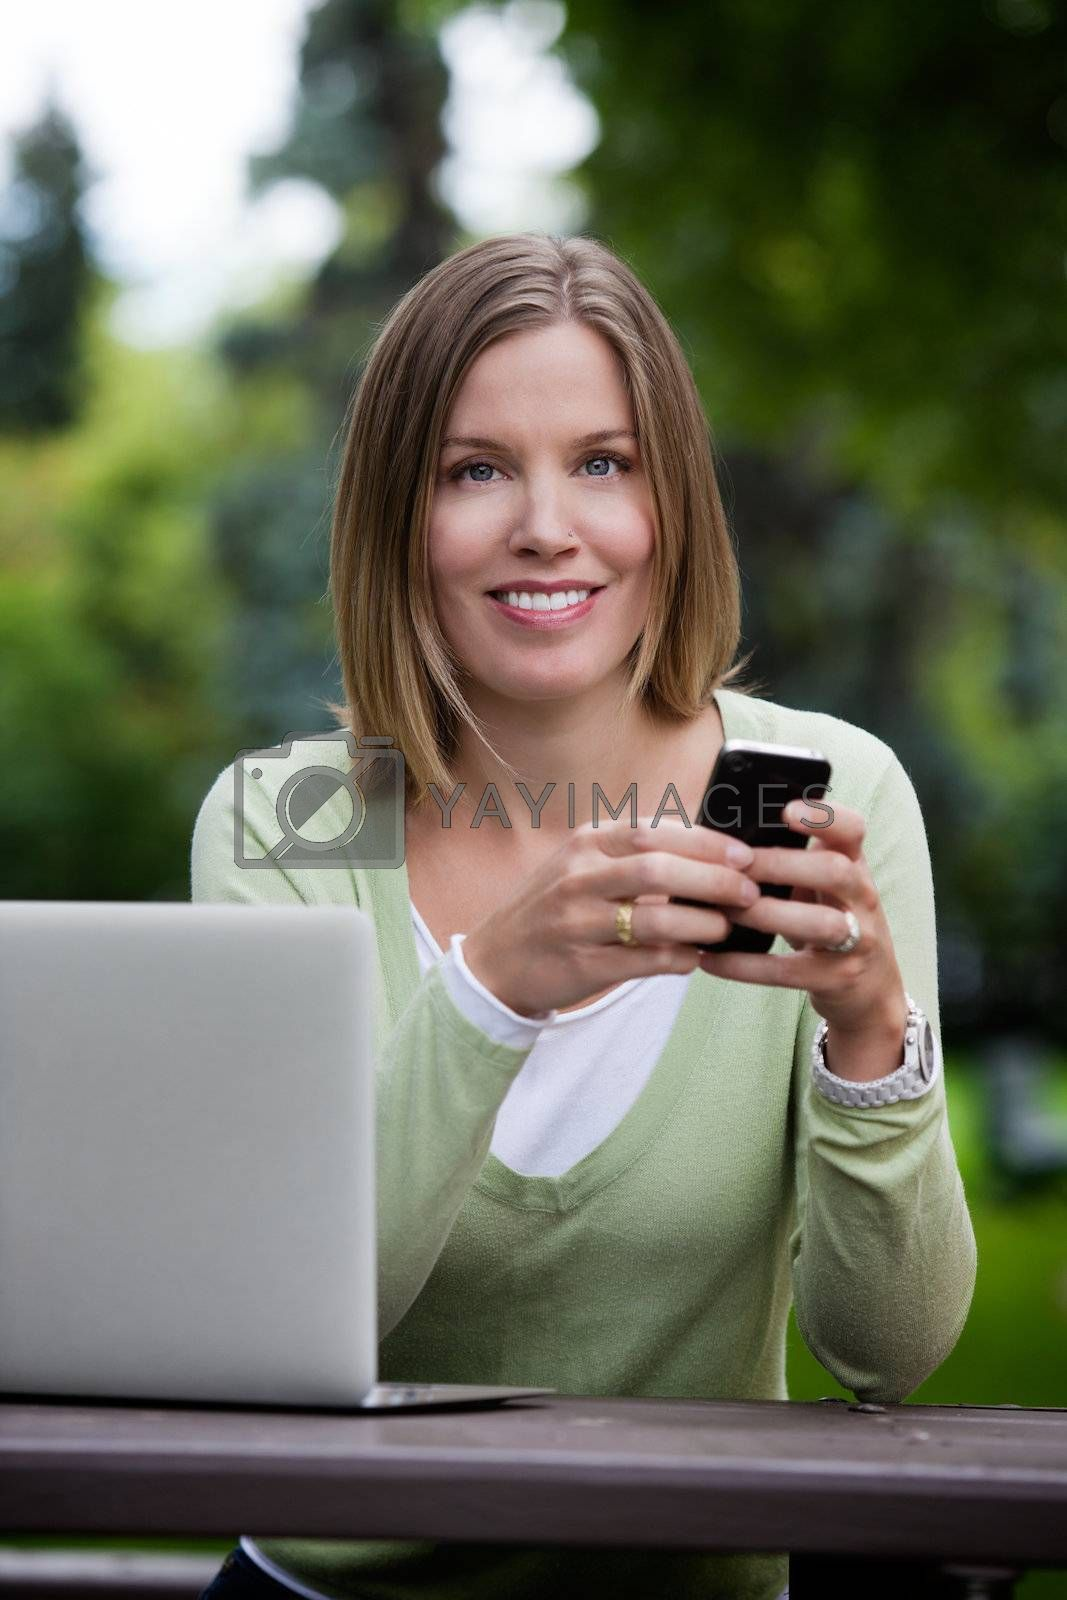 Attractive young adult in park with smart phone writing message